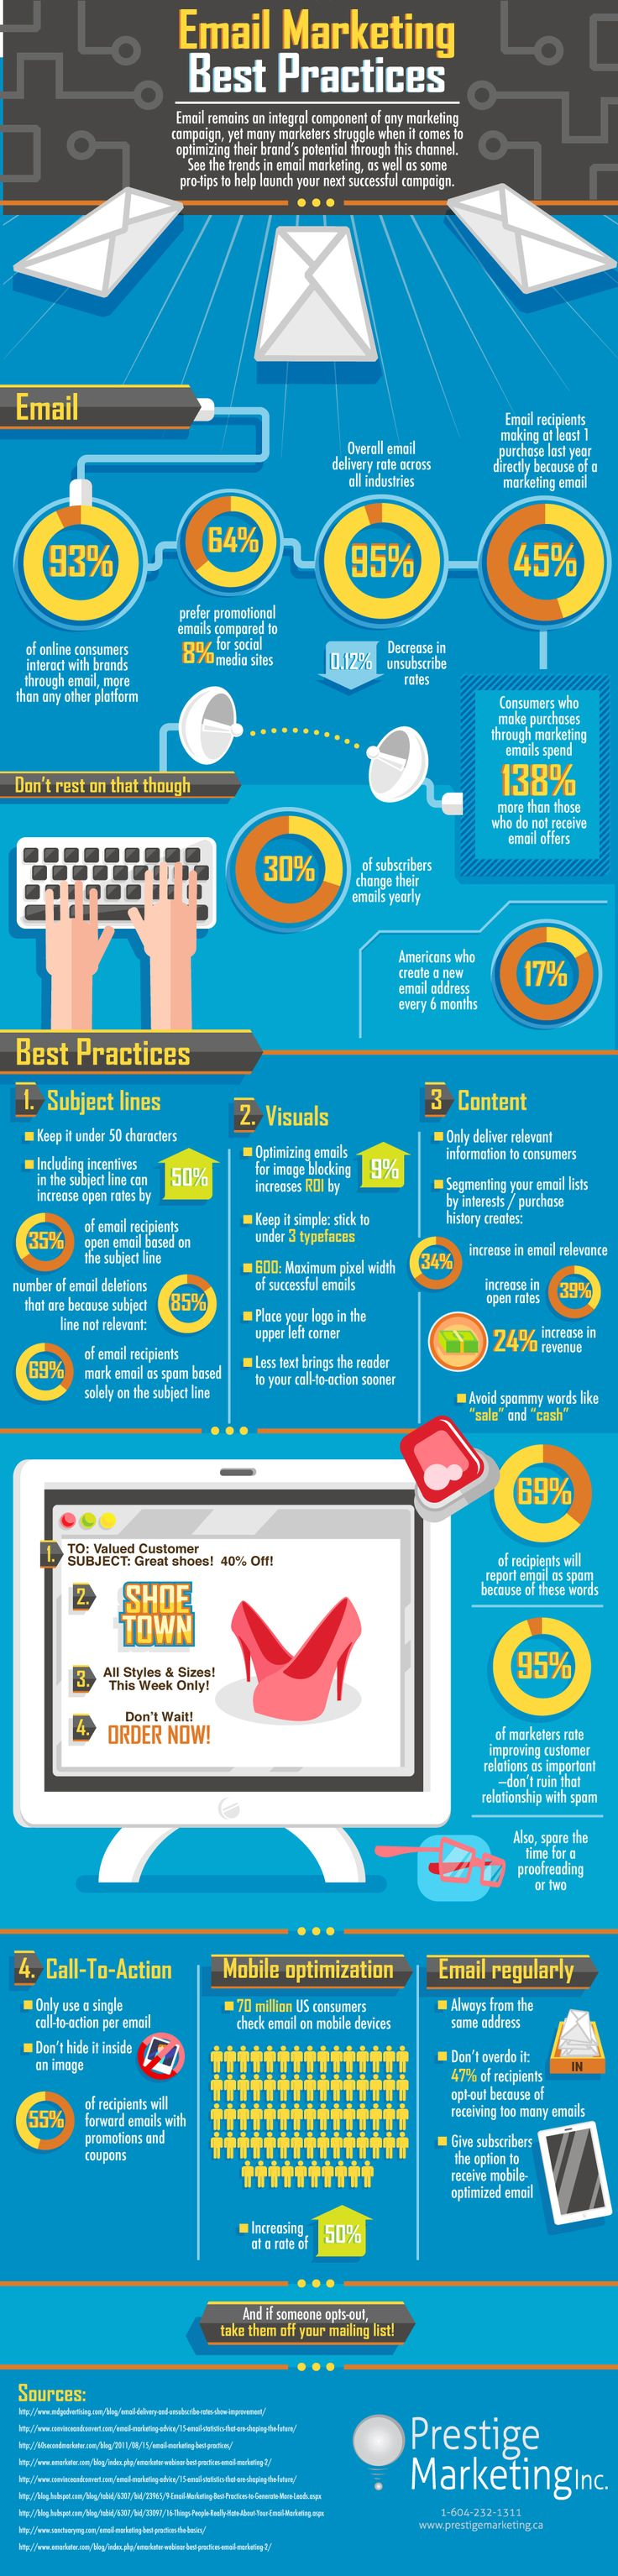 #Email #Marketing Best Practices - it's all in this #Infographic ! www.rnc-consulting.com